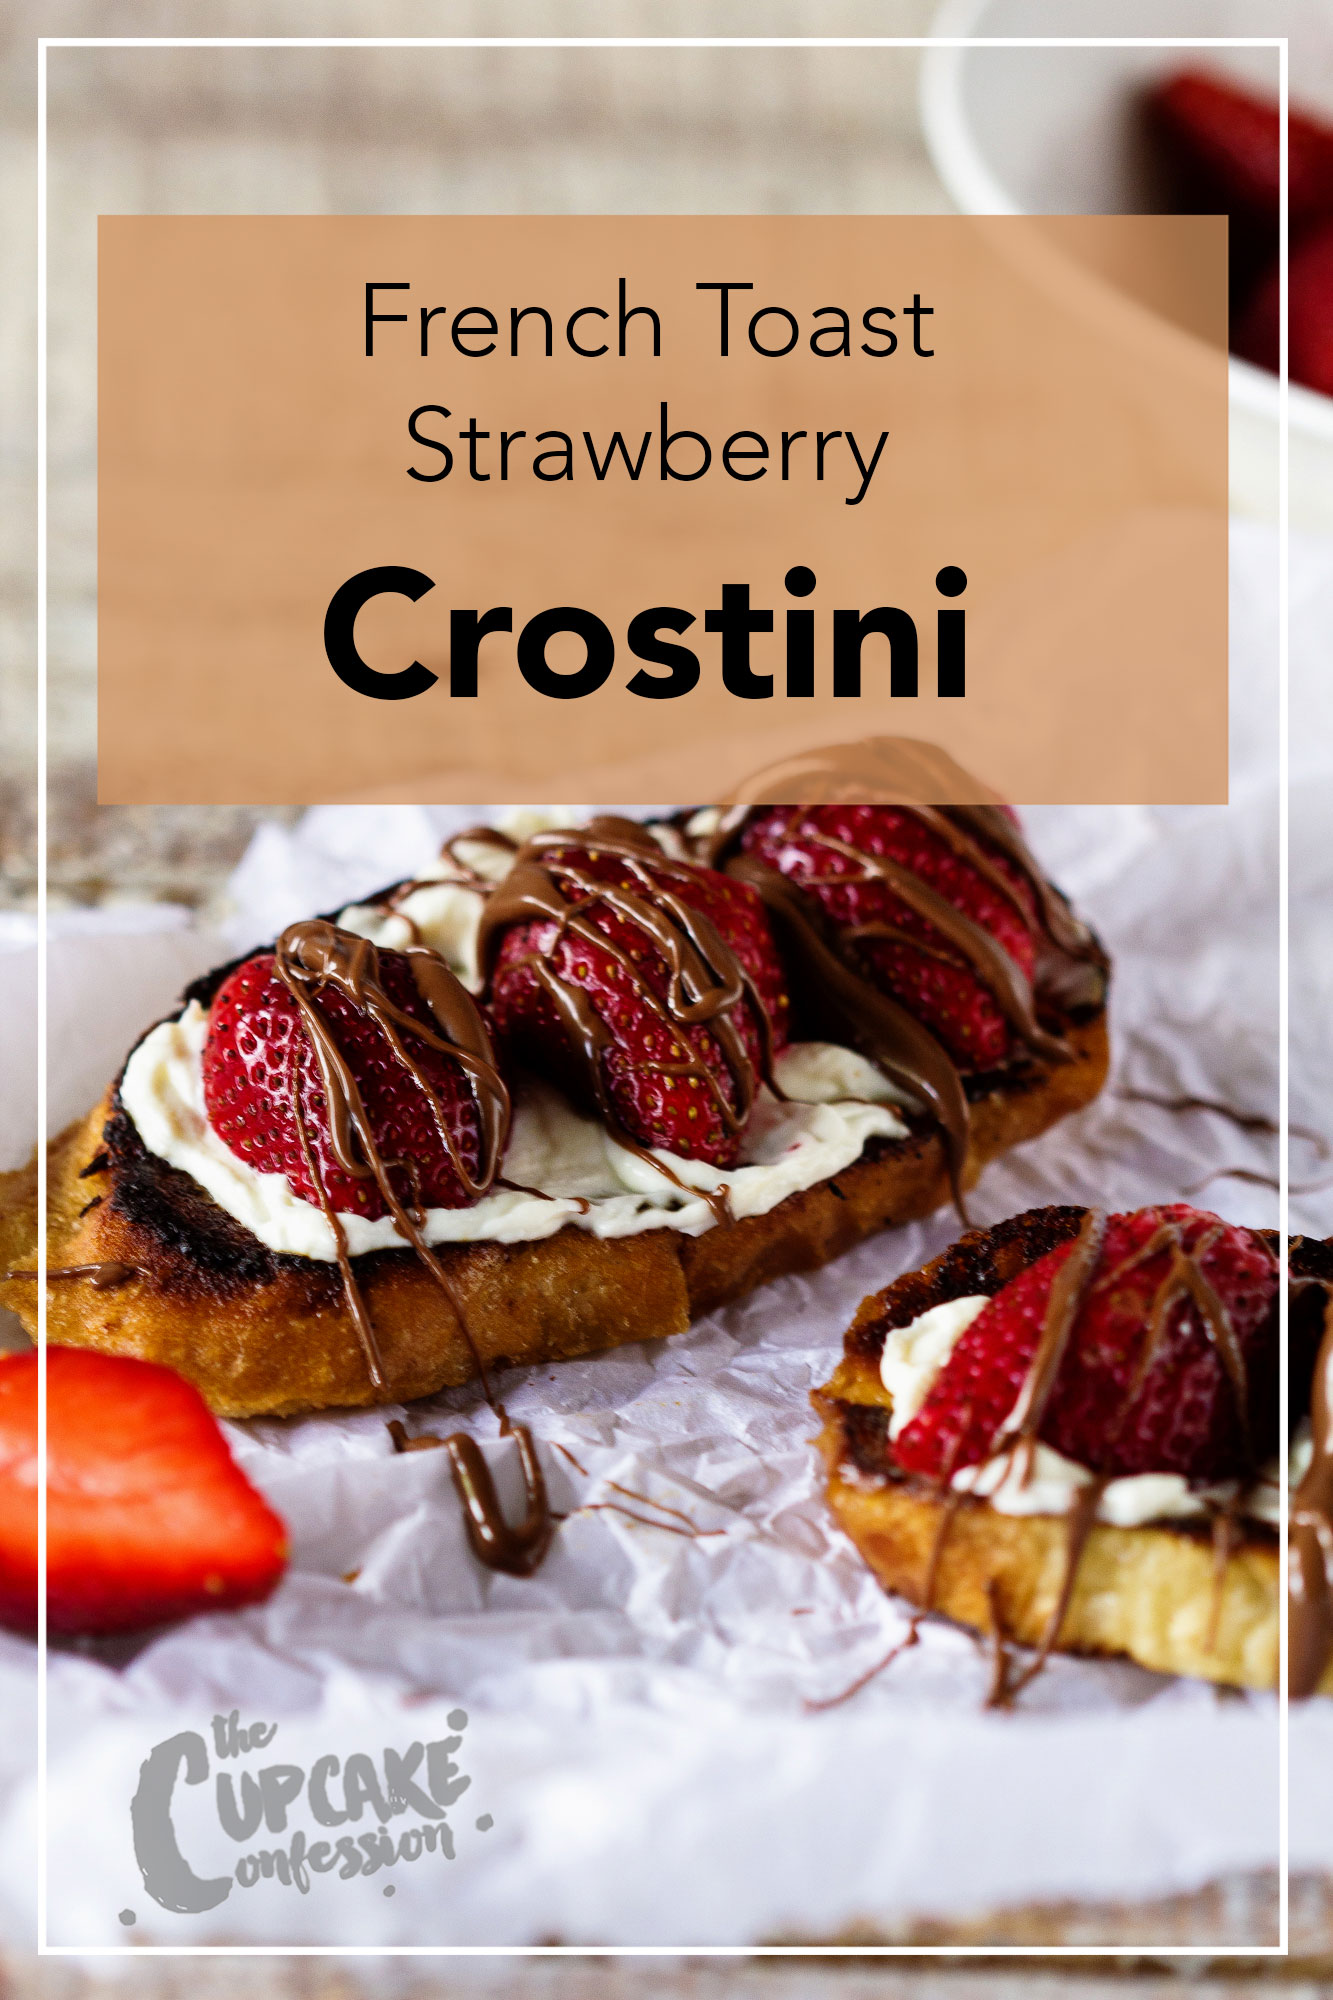 Final-Edit-French-Toast-Strawberry-Crostini-03-the-cupcake-confession